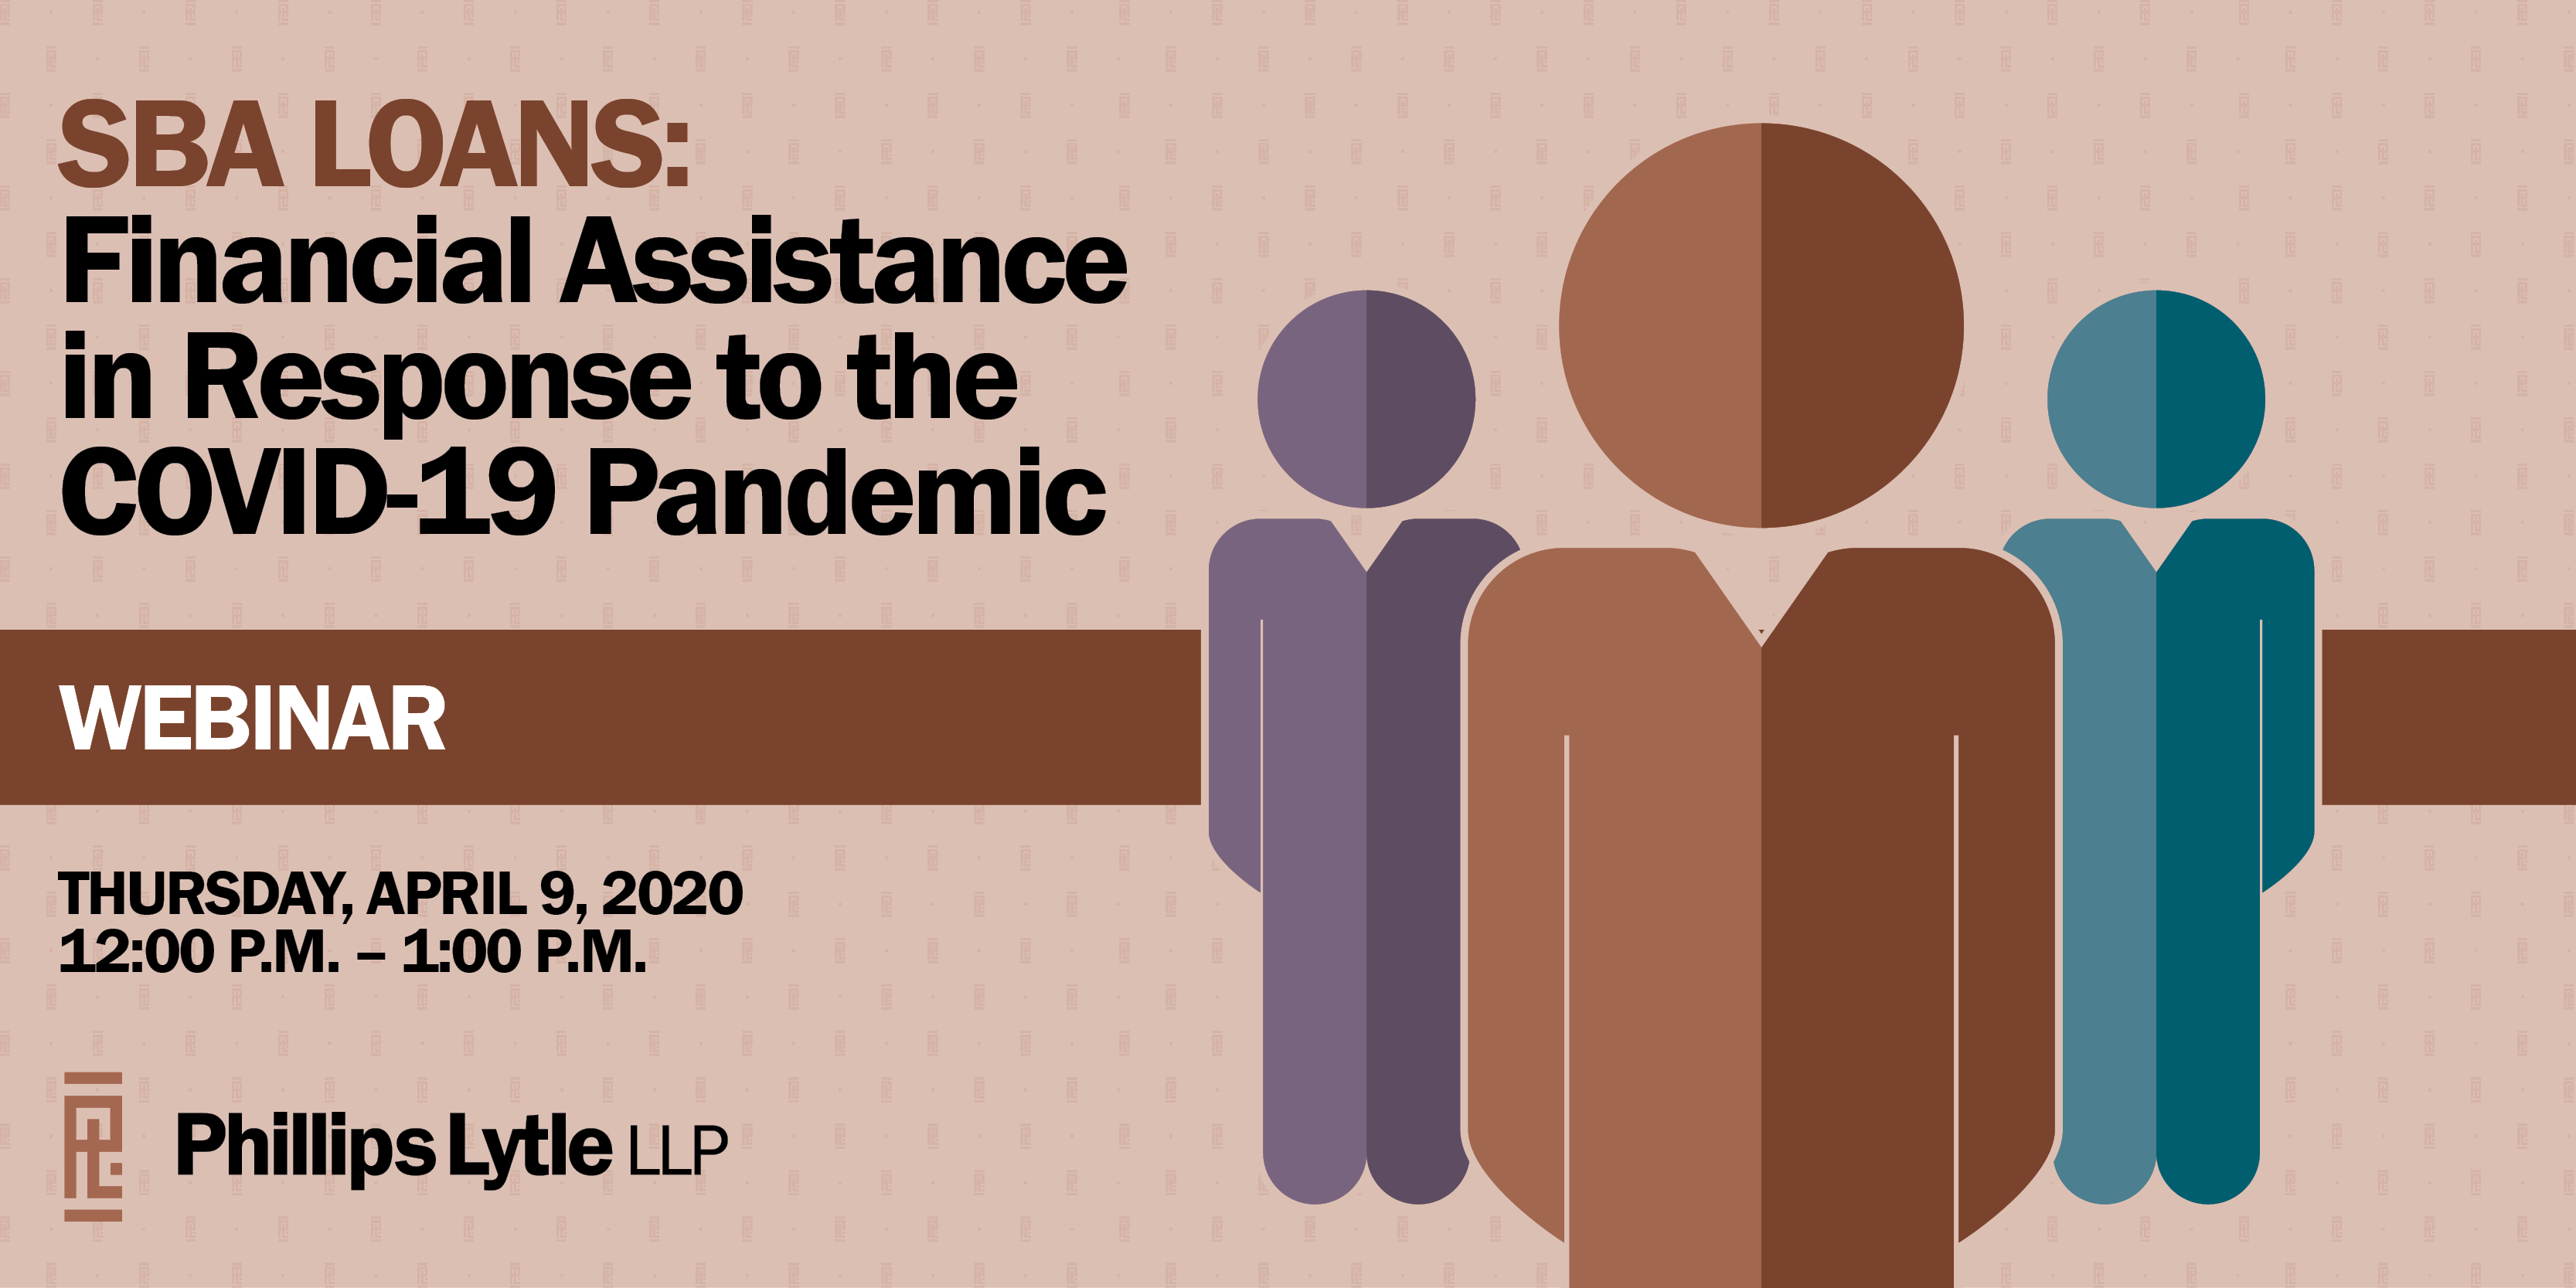 Webinar | SBA Loans: Financial Assistance in Response to the COVID-19 Pandemic